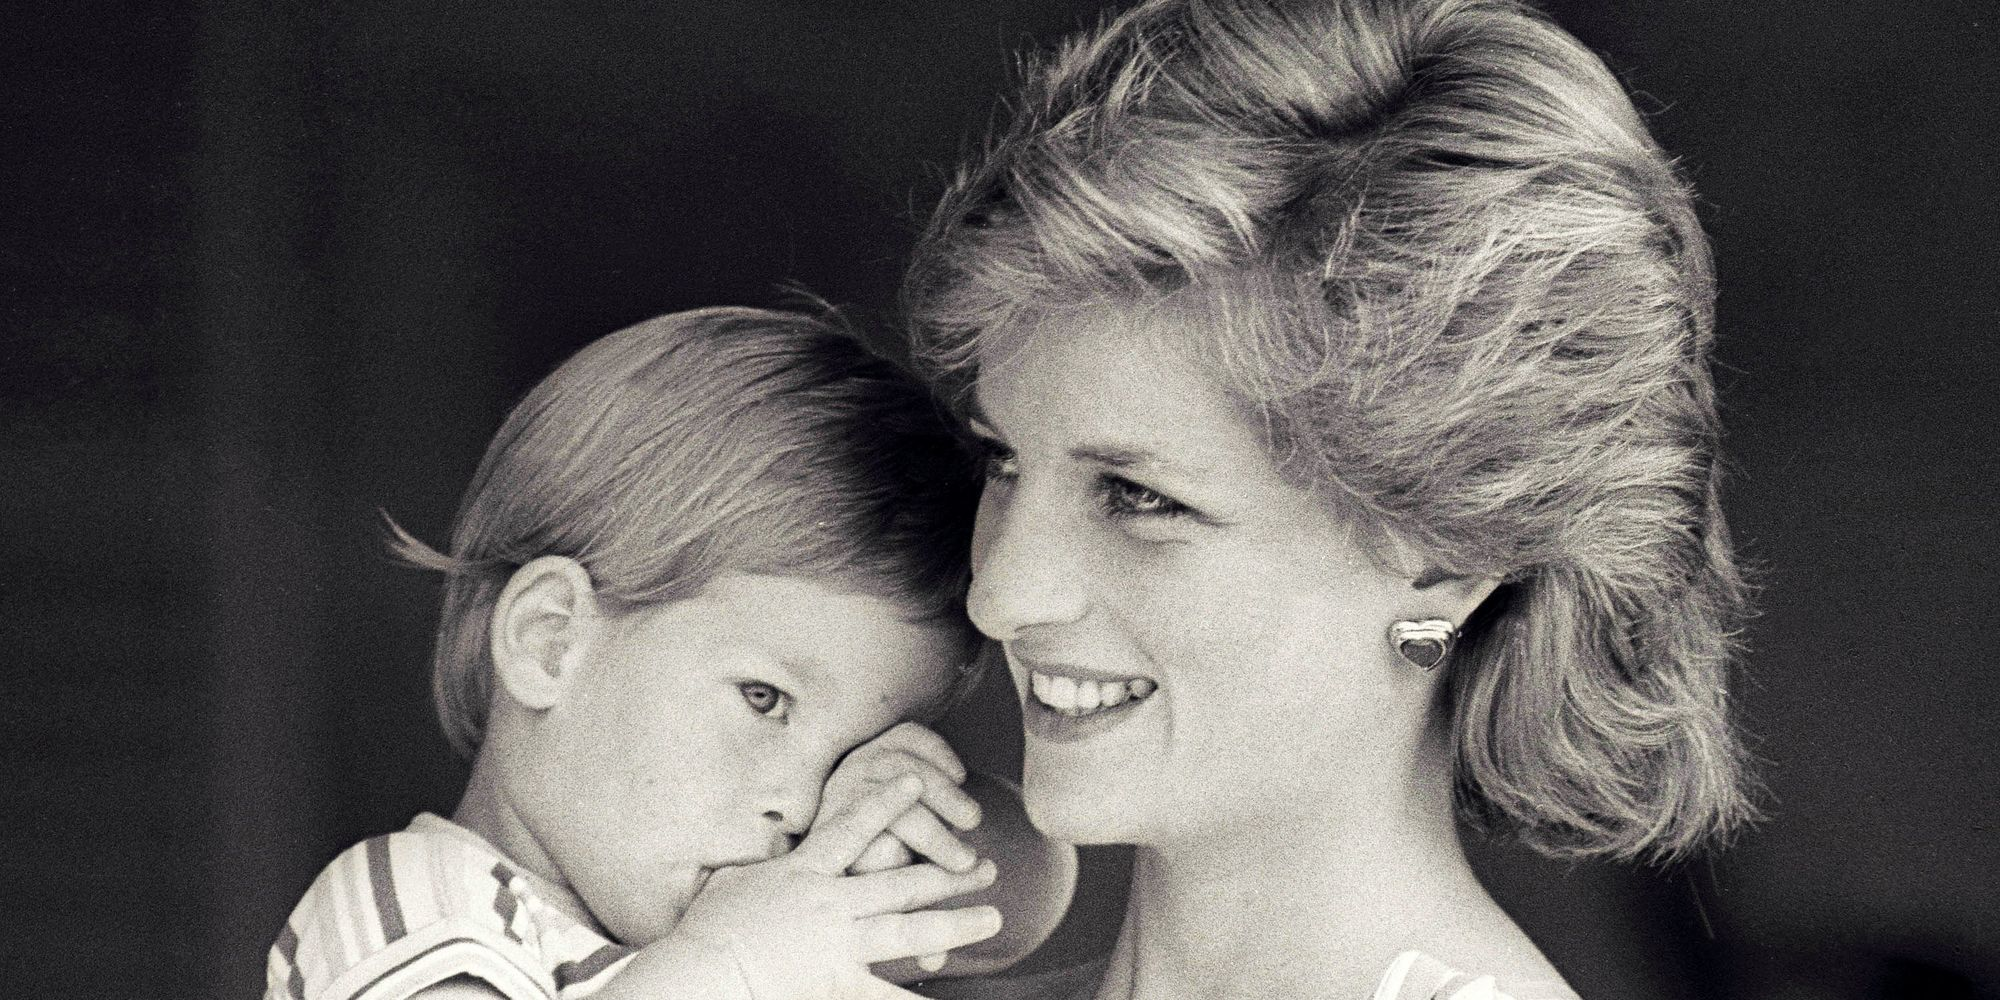 Prince Harry Reveals How Counseling Helped Him Cope With Diana